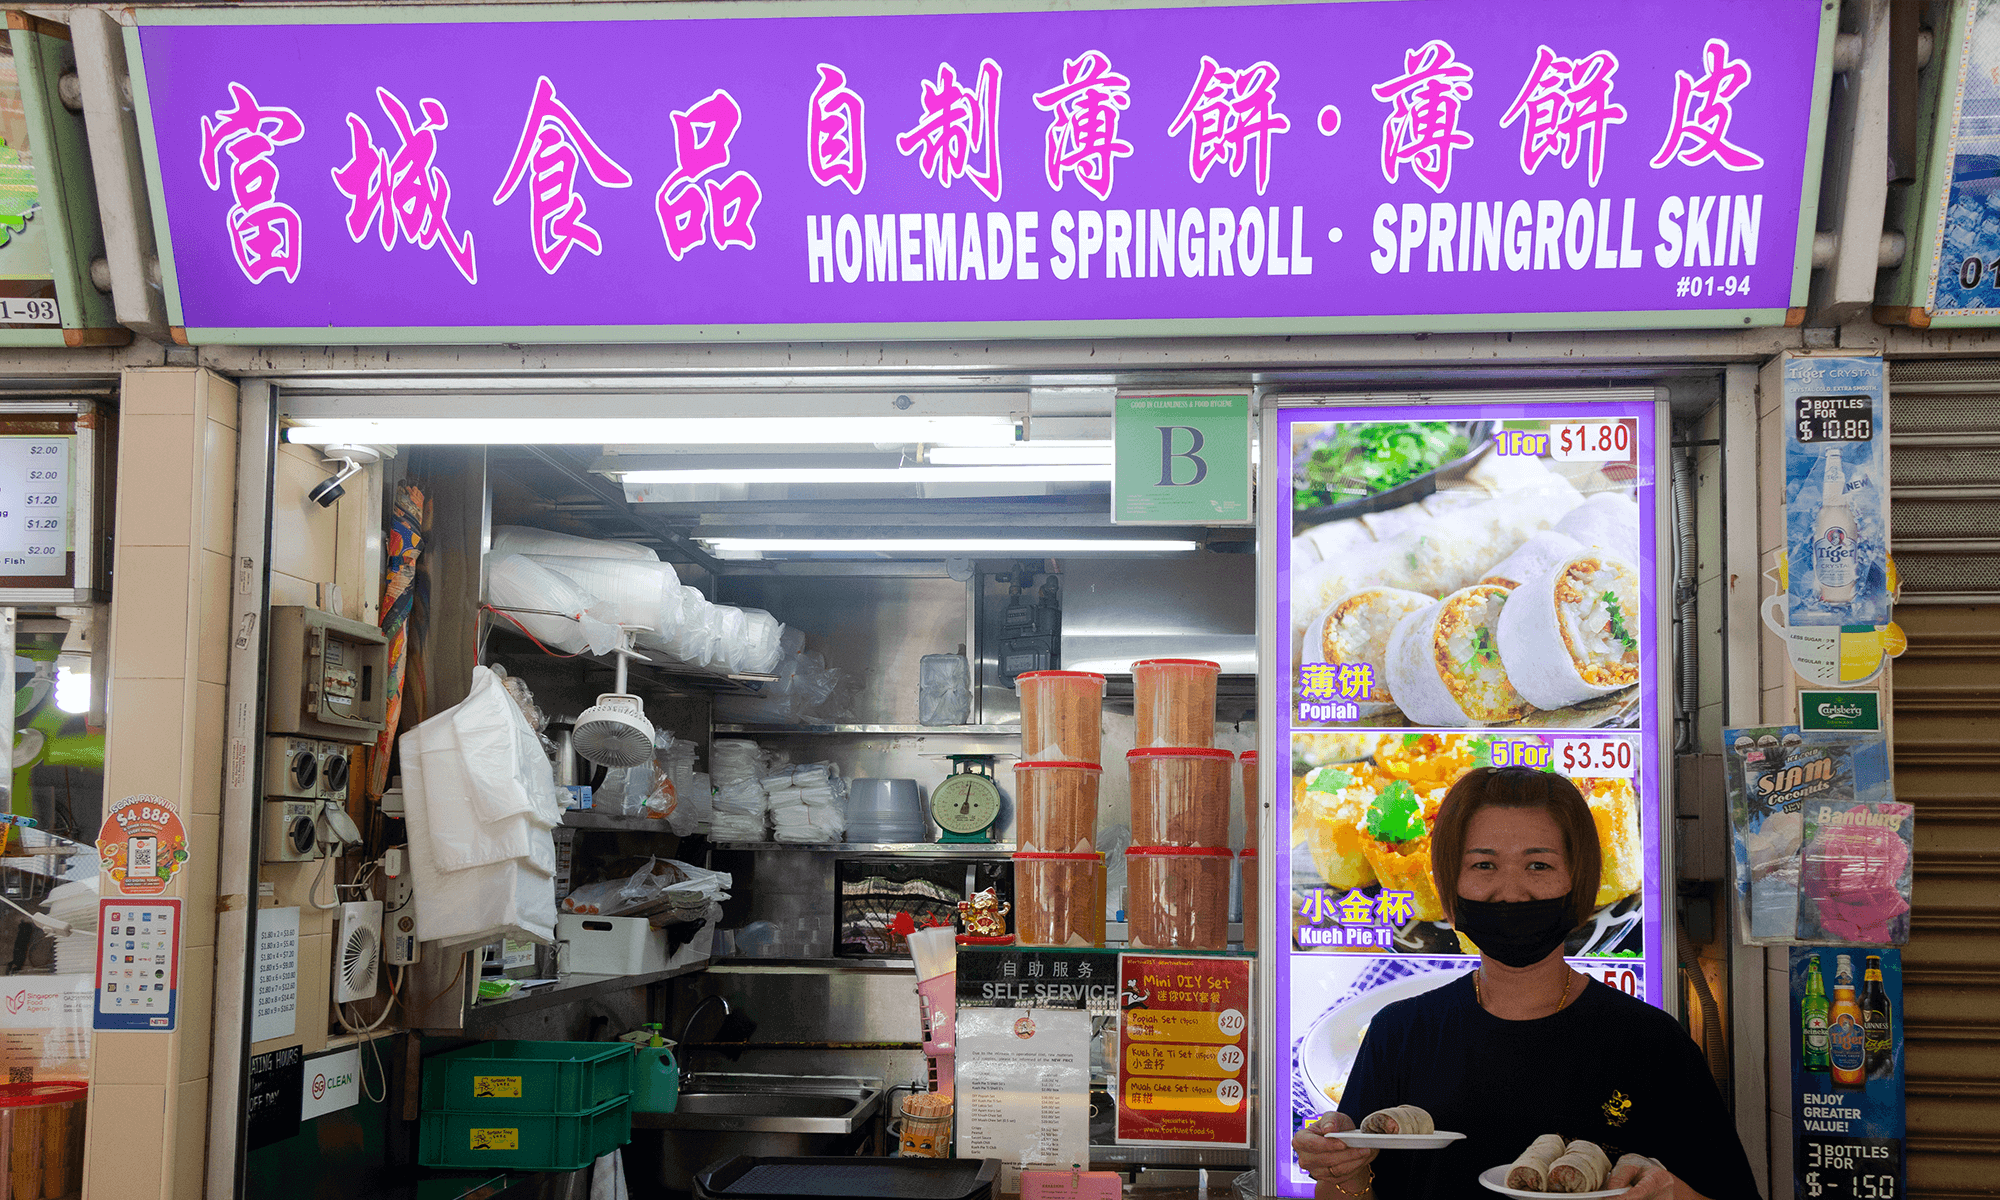 Fortune homemade springroll popiah WhyQ Hawker Delivery